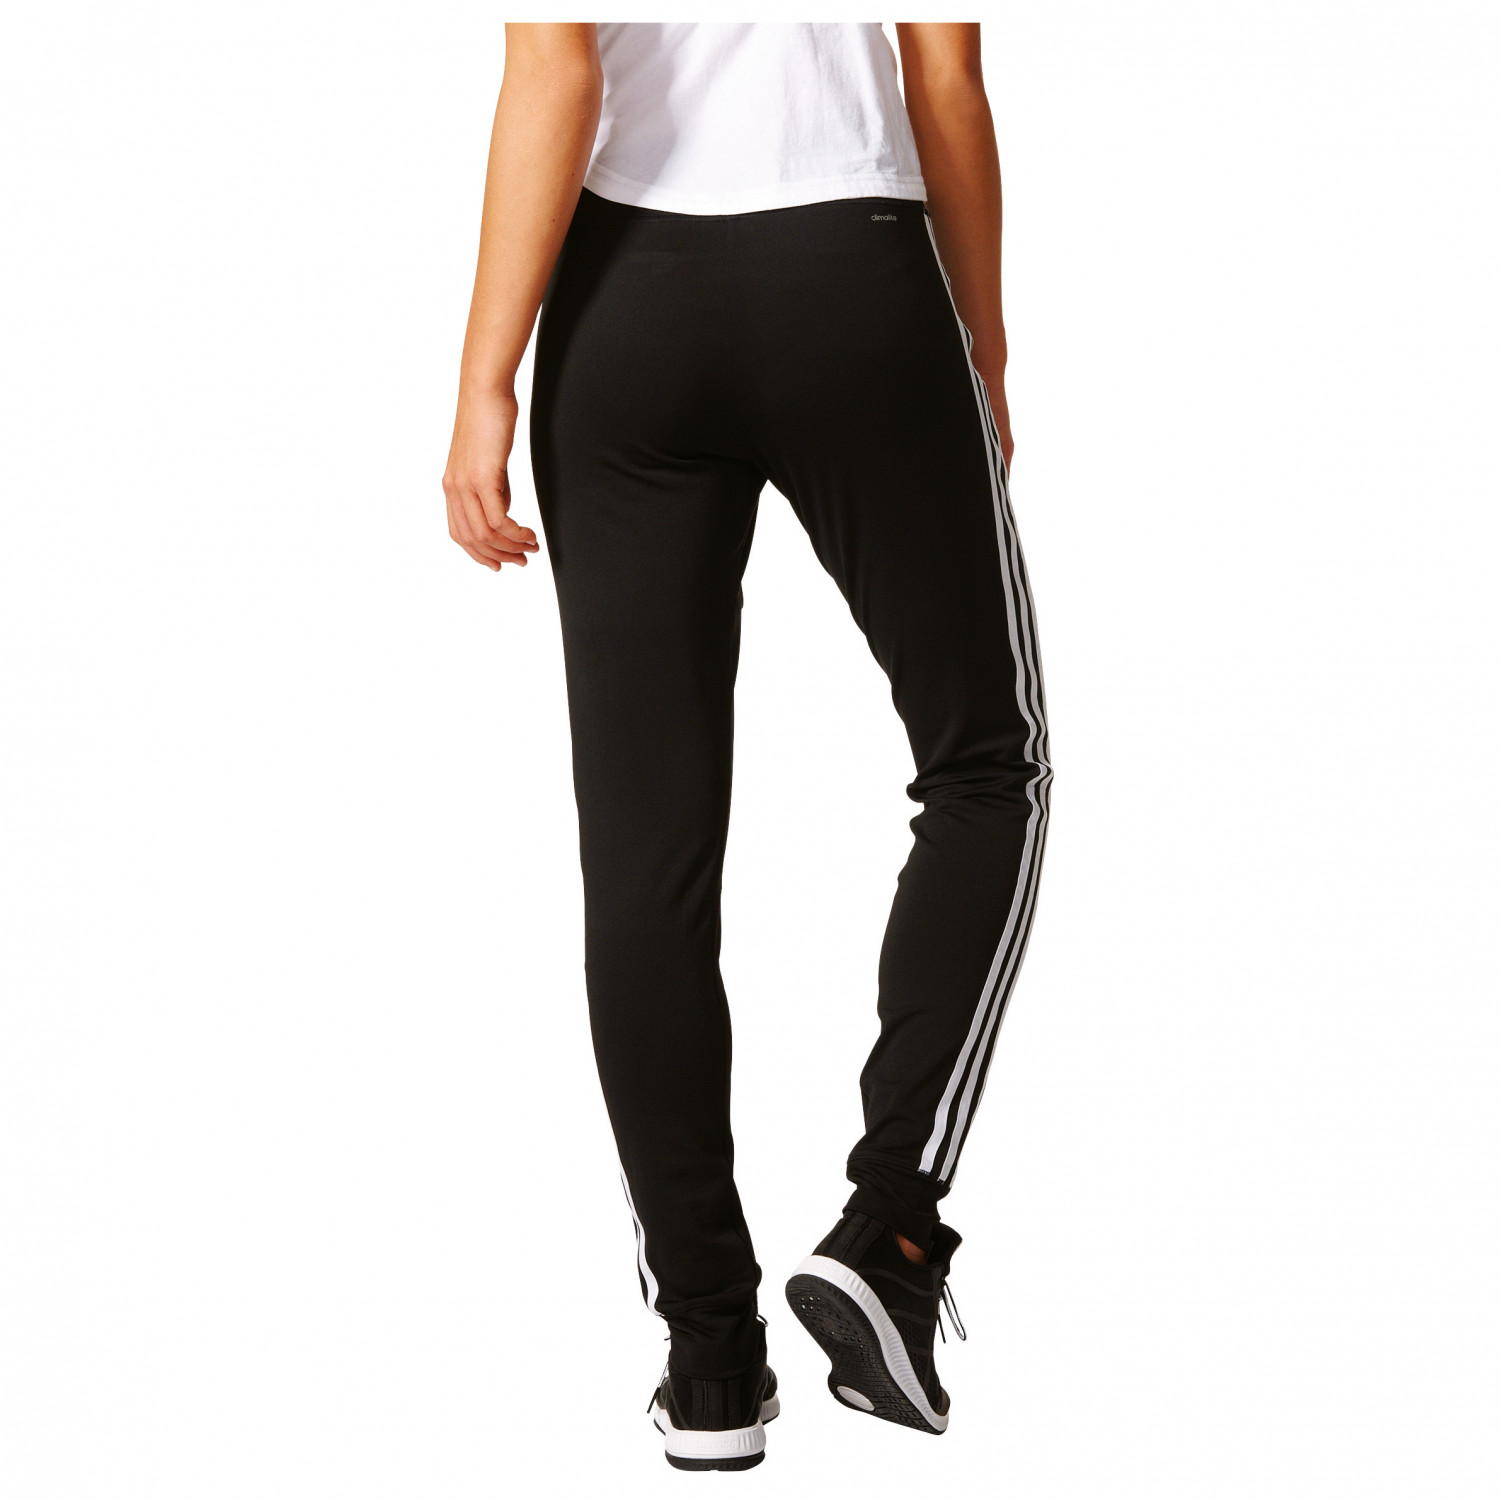 Adidas D2M Cuff Pant 3S - Tracksuit trousers Women's | Buy ...